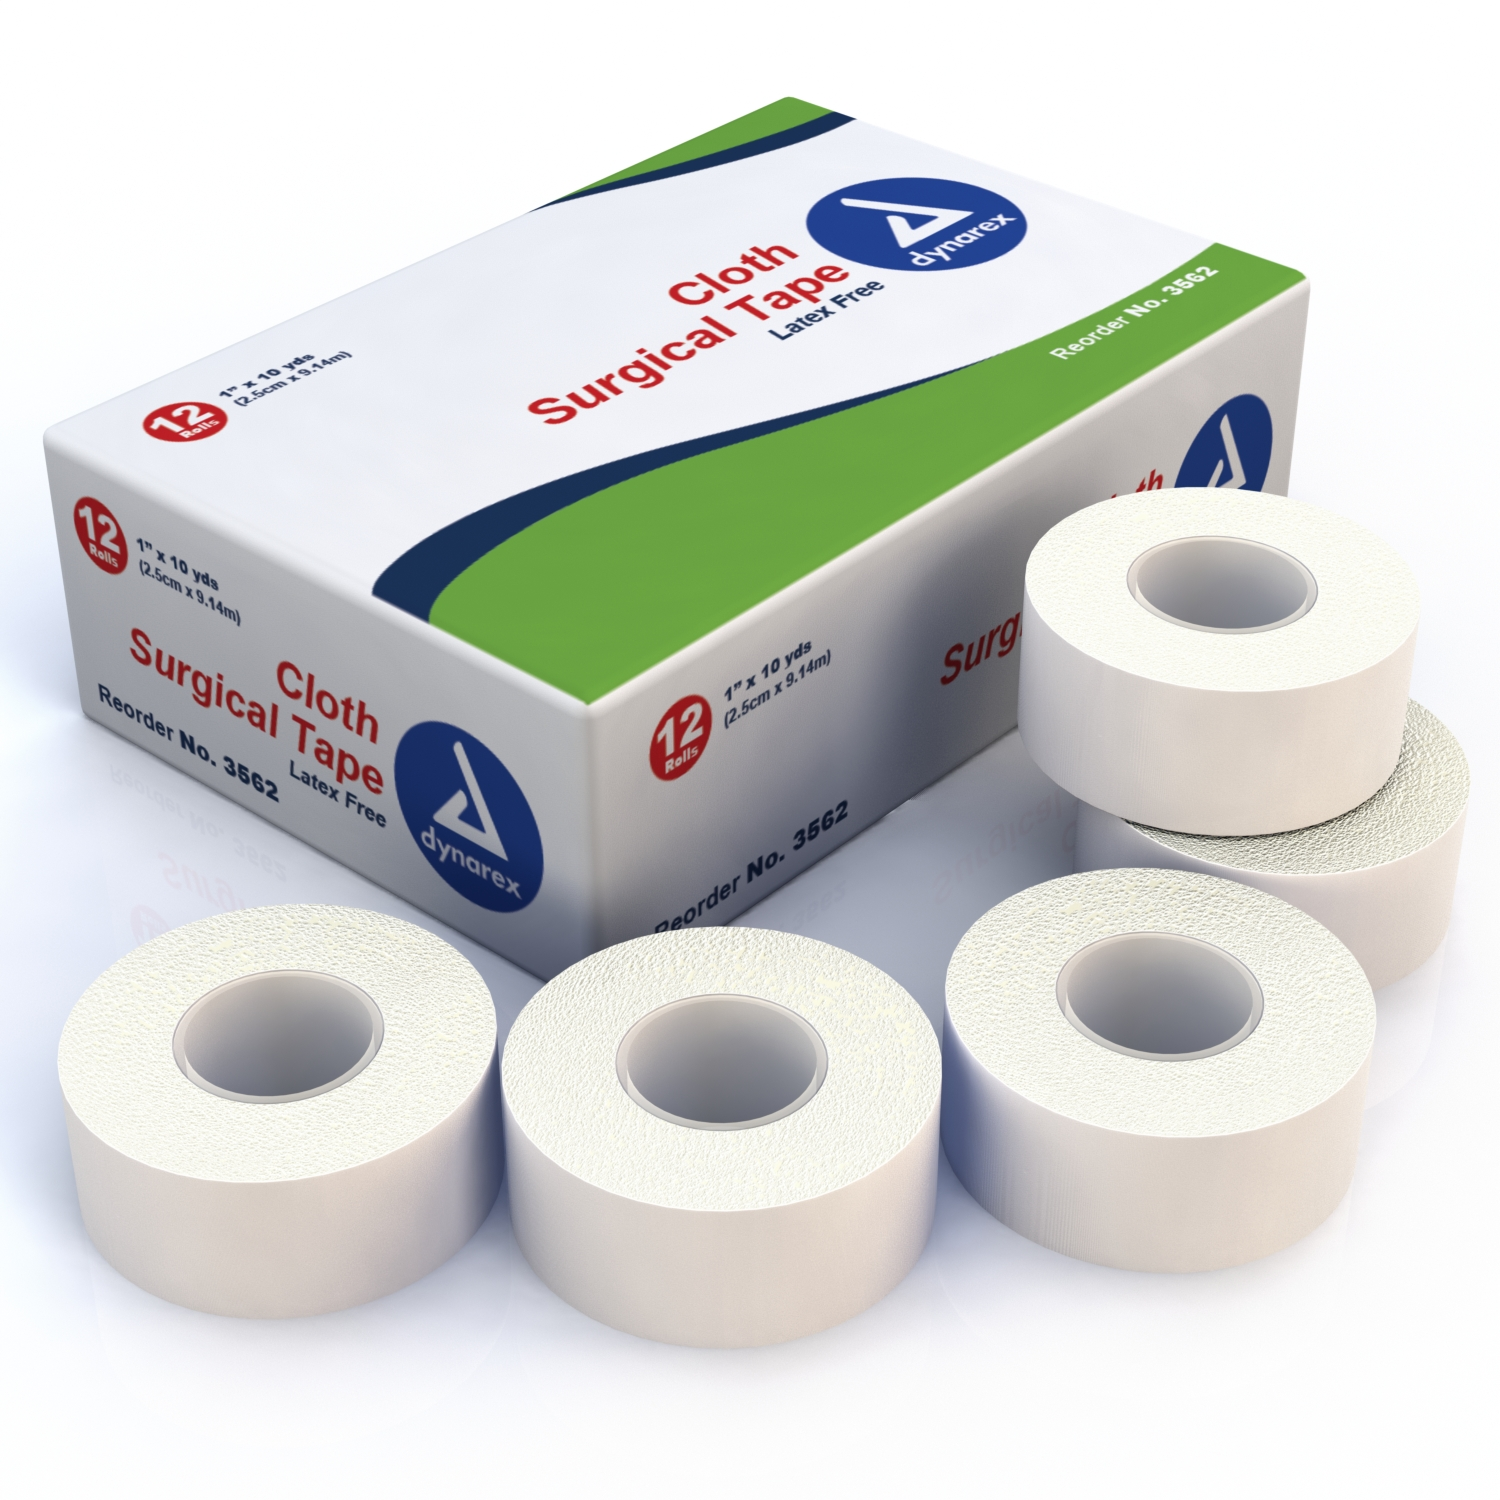 1 Inch Cloth Surgical Tape: Single Roll image